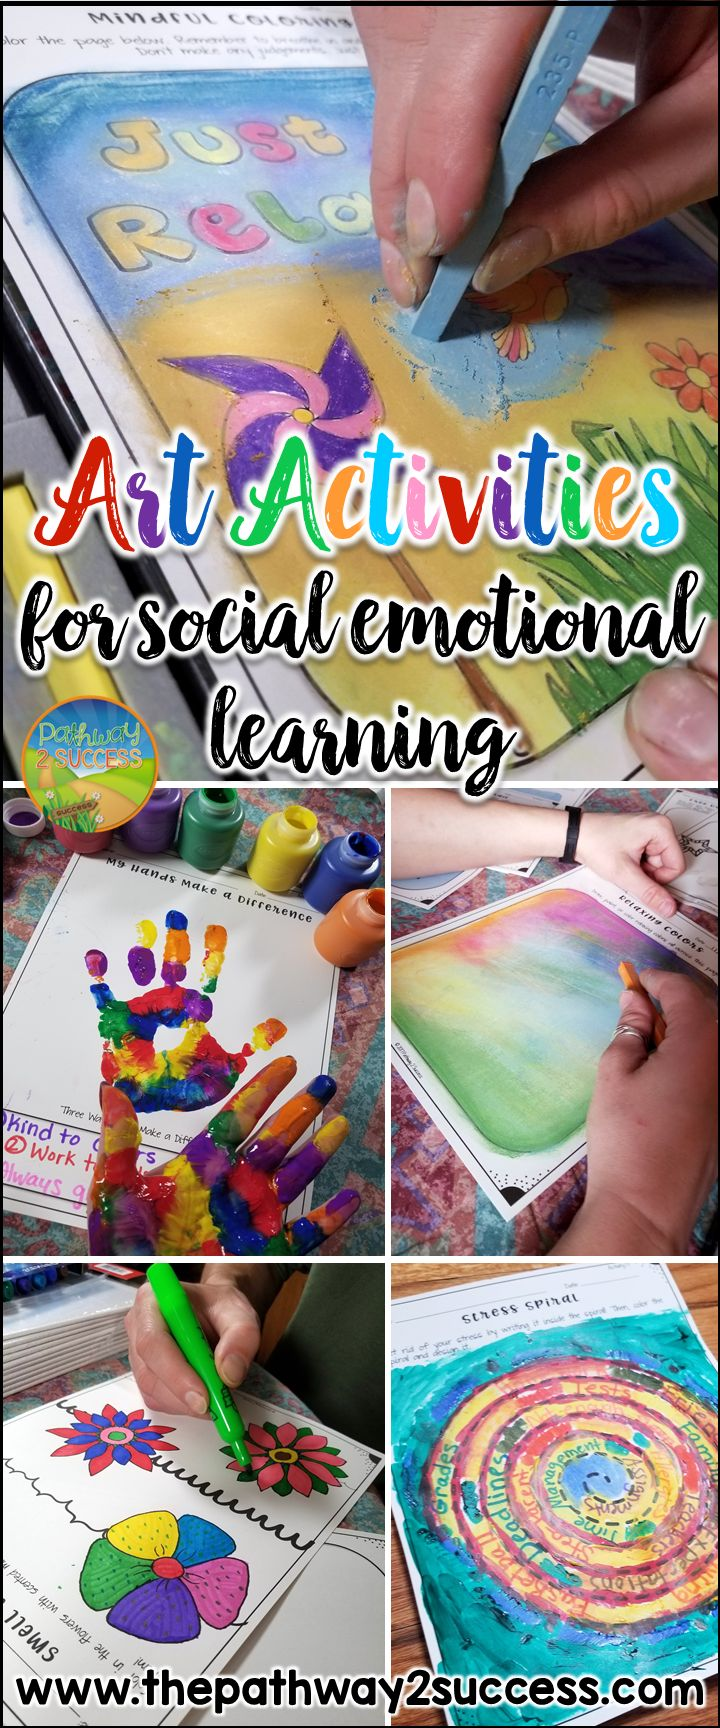 Art activities for social emotional learning. Use the power of art to boost confidence, improve social skills, develop self-awareness, increase problem-solving skills, help to manage emotions, and more.